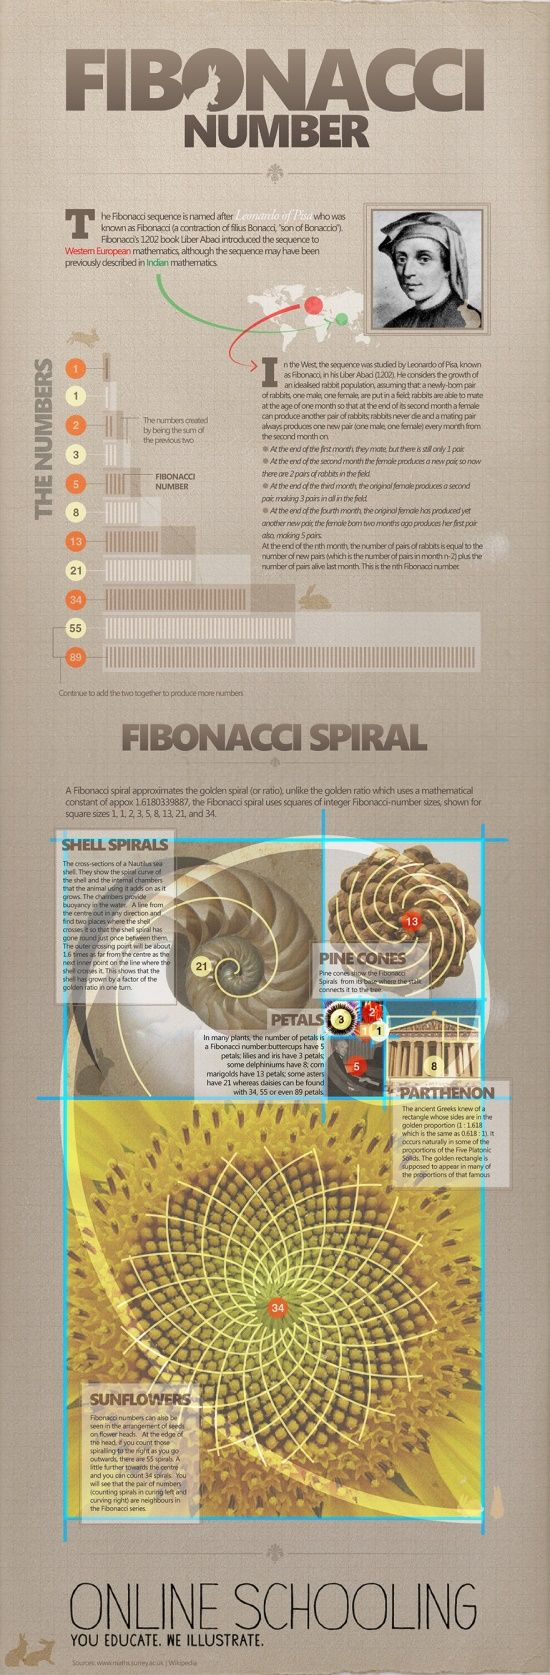 Fibonacci Number..the video on this website is incredible... shows the majesty of our Creator!